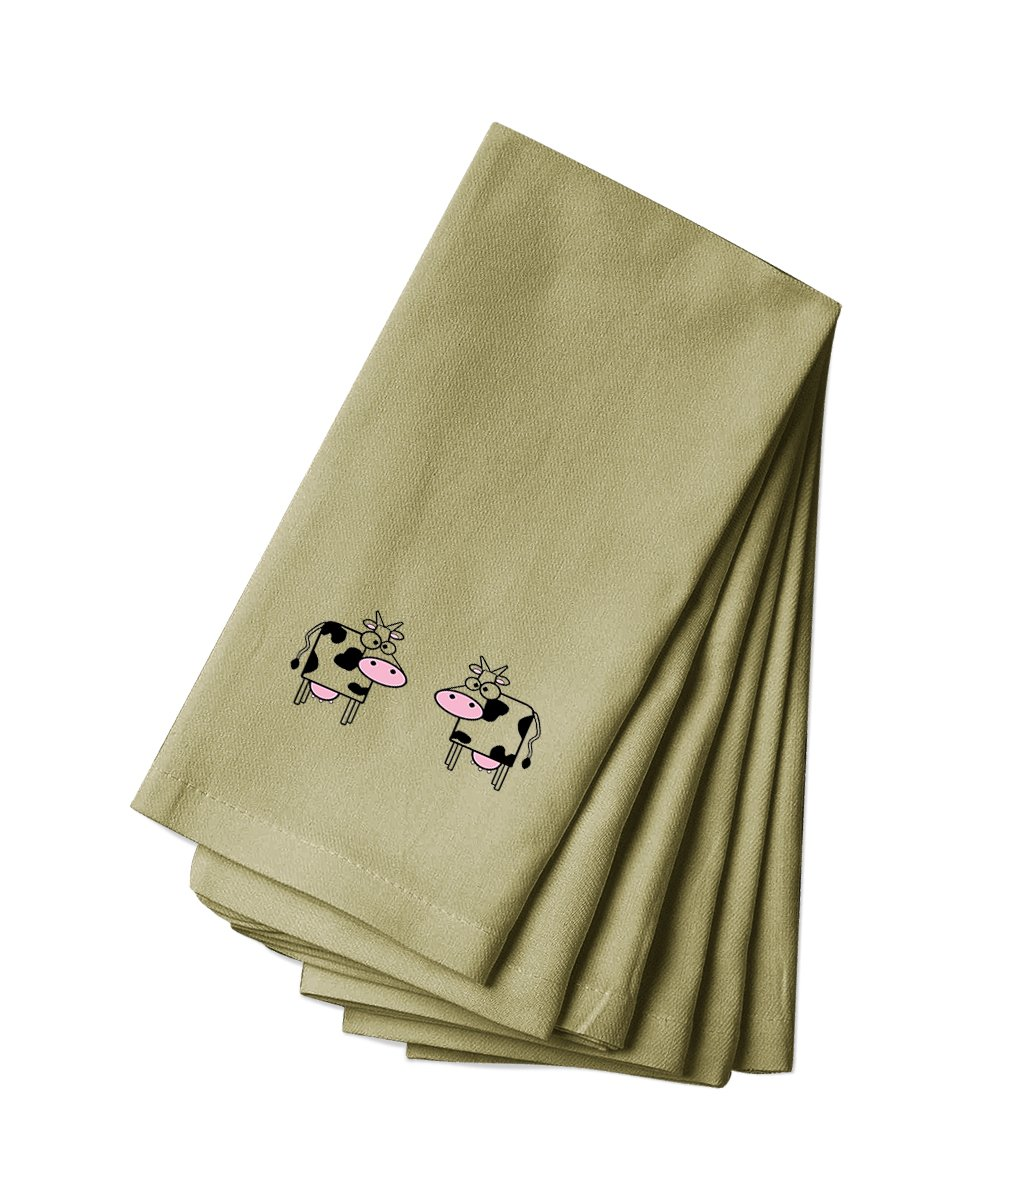 Style in Print Cotton Canvas Dinner Napkin Set Of 4 Cows Animal Image By